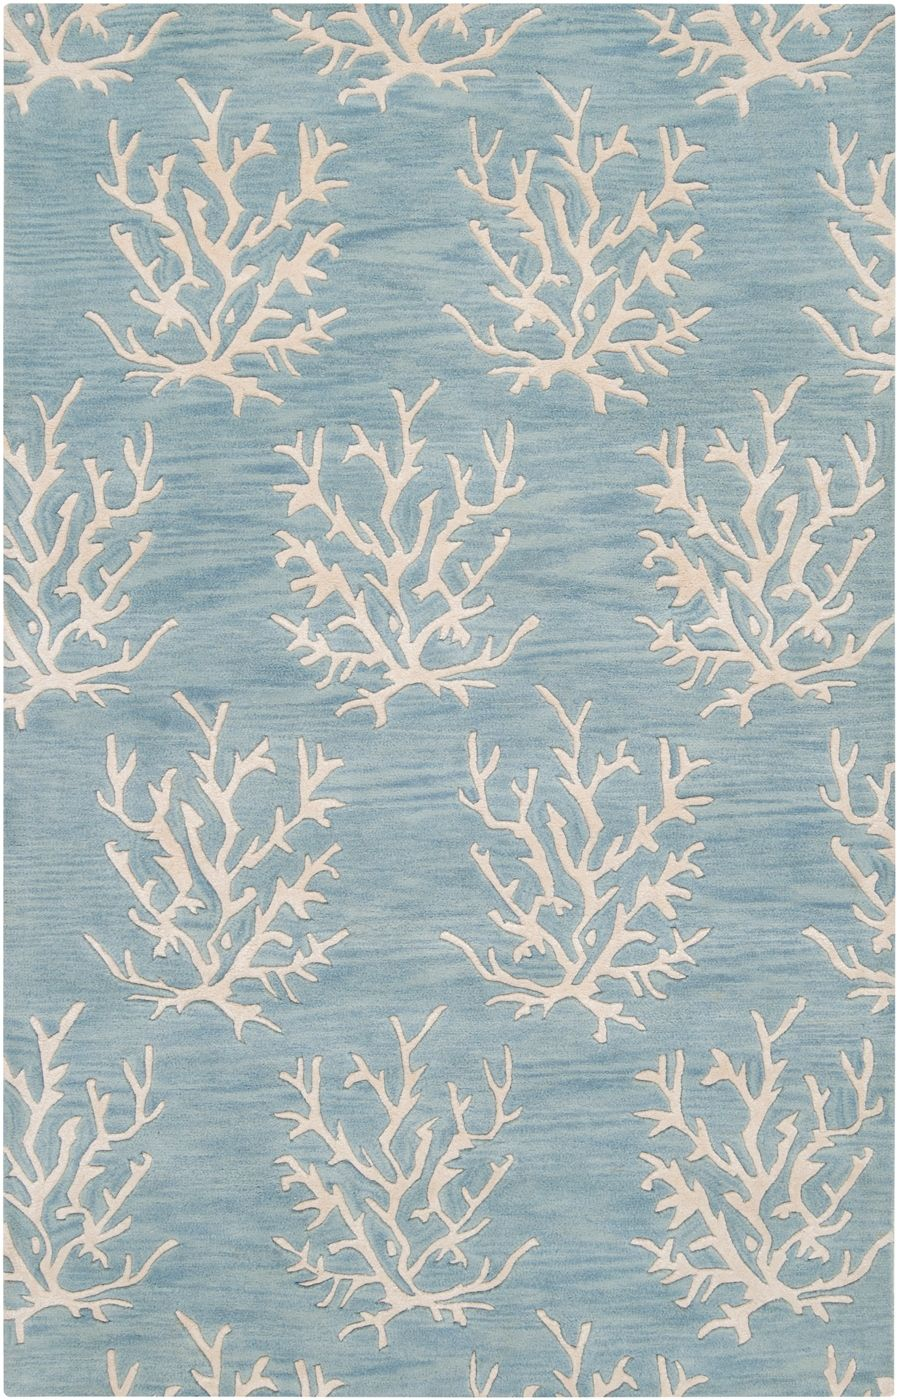 Escape Small C Area Rug White On Powder Blue Beach Decor Coastal Home Nautical Tropical Island Cottage Furnishings